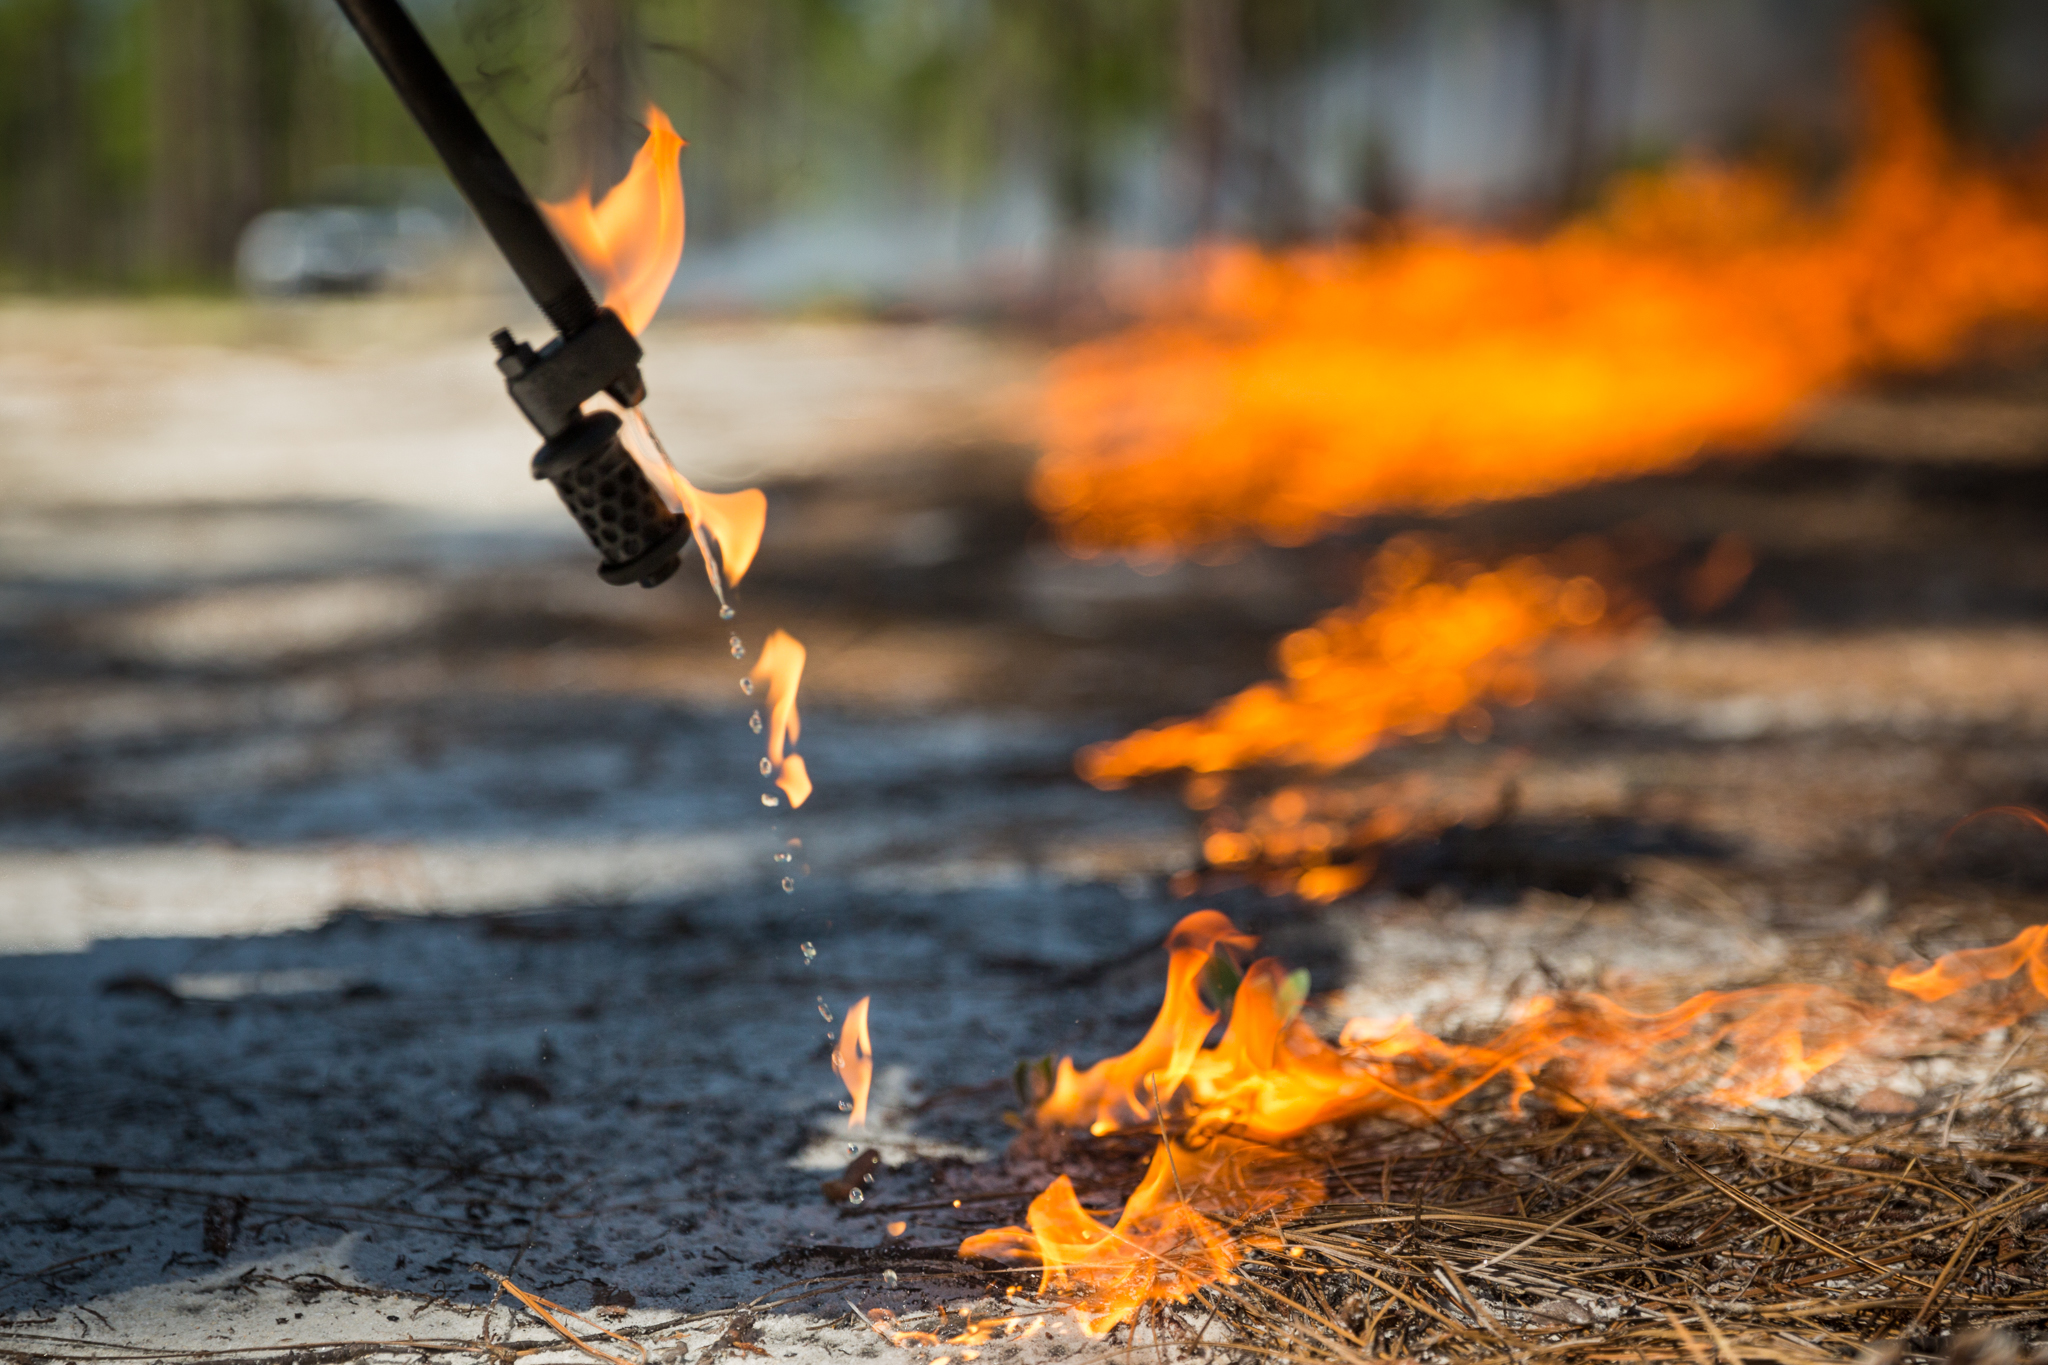 To turn the Calloway Forest Preserve land into better woodpecker habitat, The Nature Conservancy sets prescribed fires with drip torches.